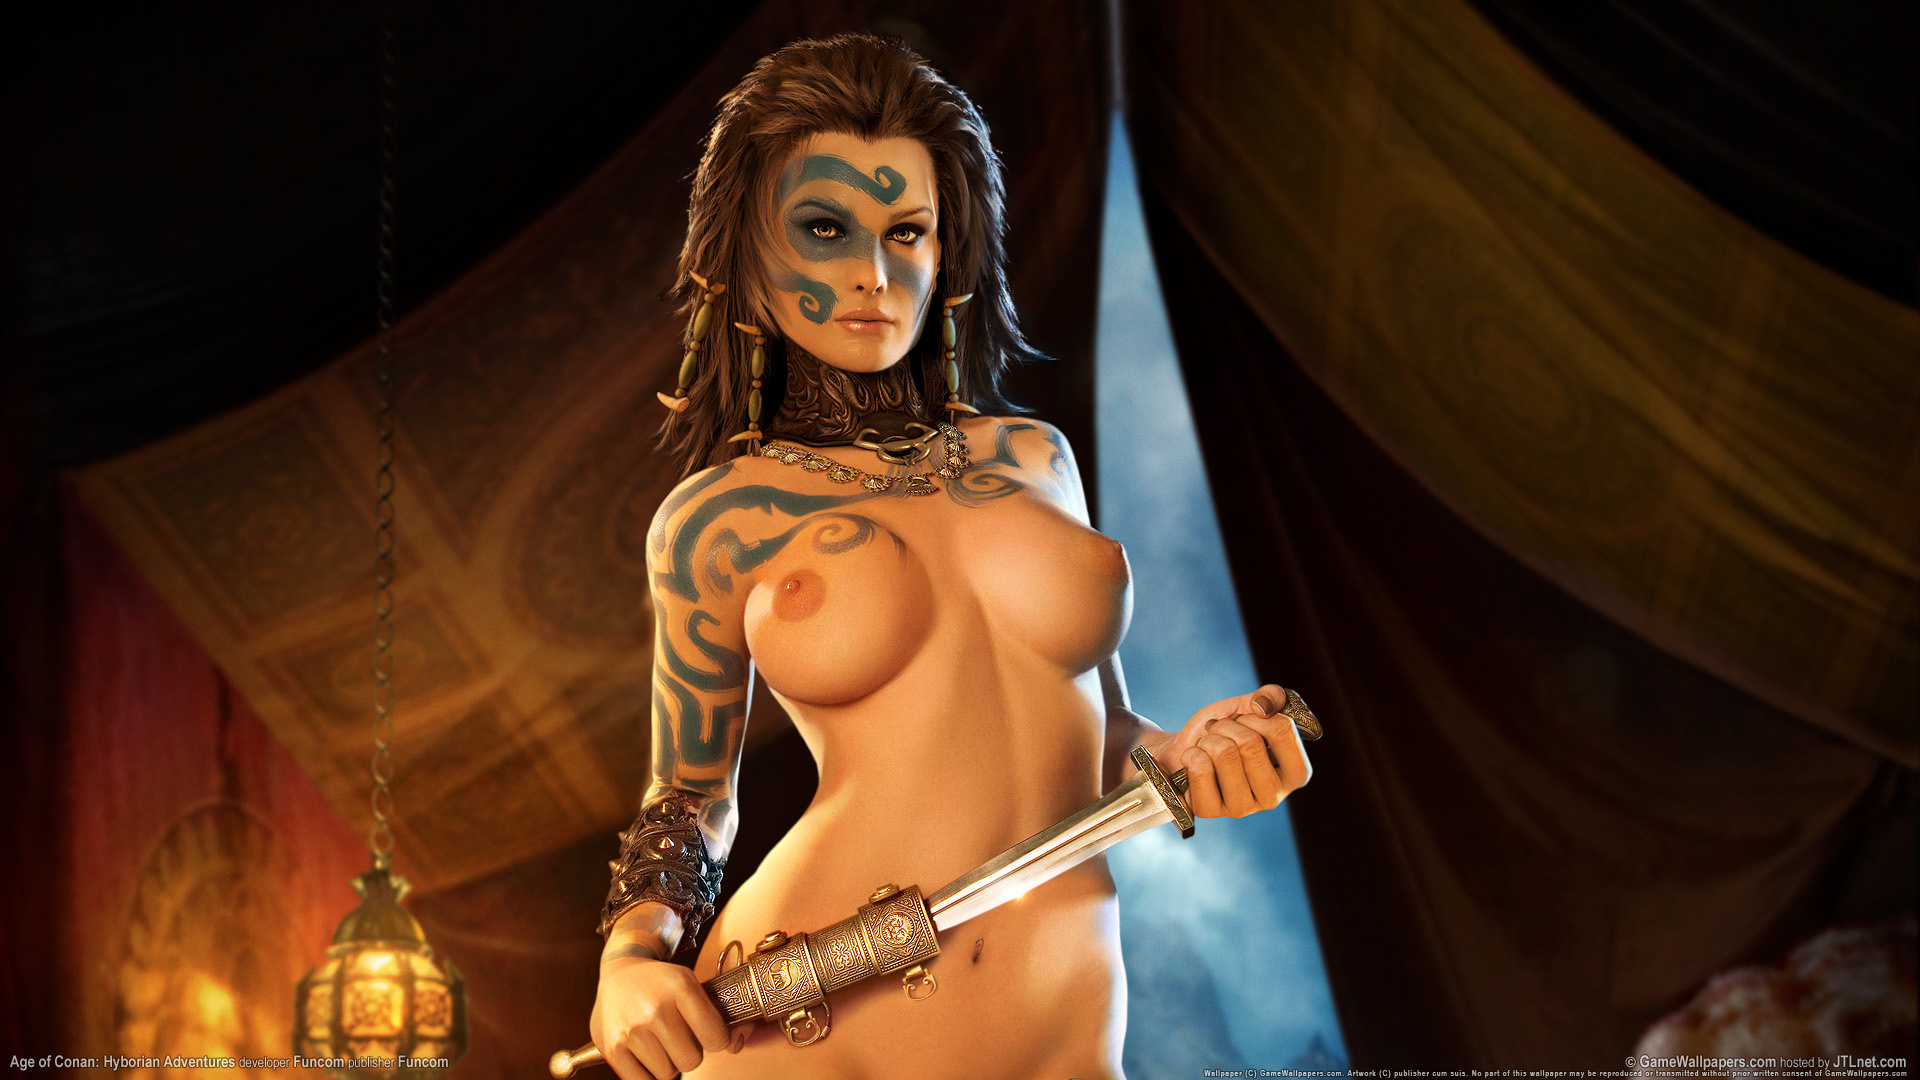 Nude warriors girls 3d wallpaper xxx tubes